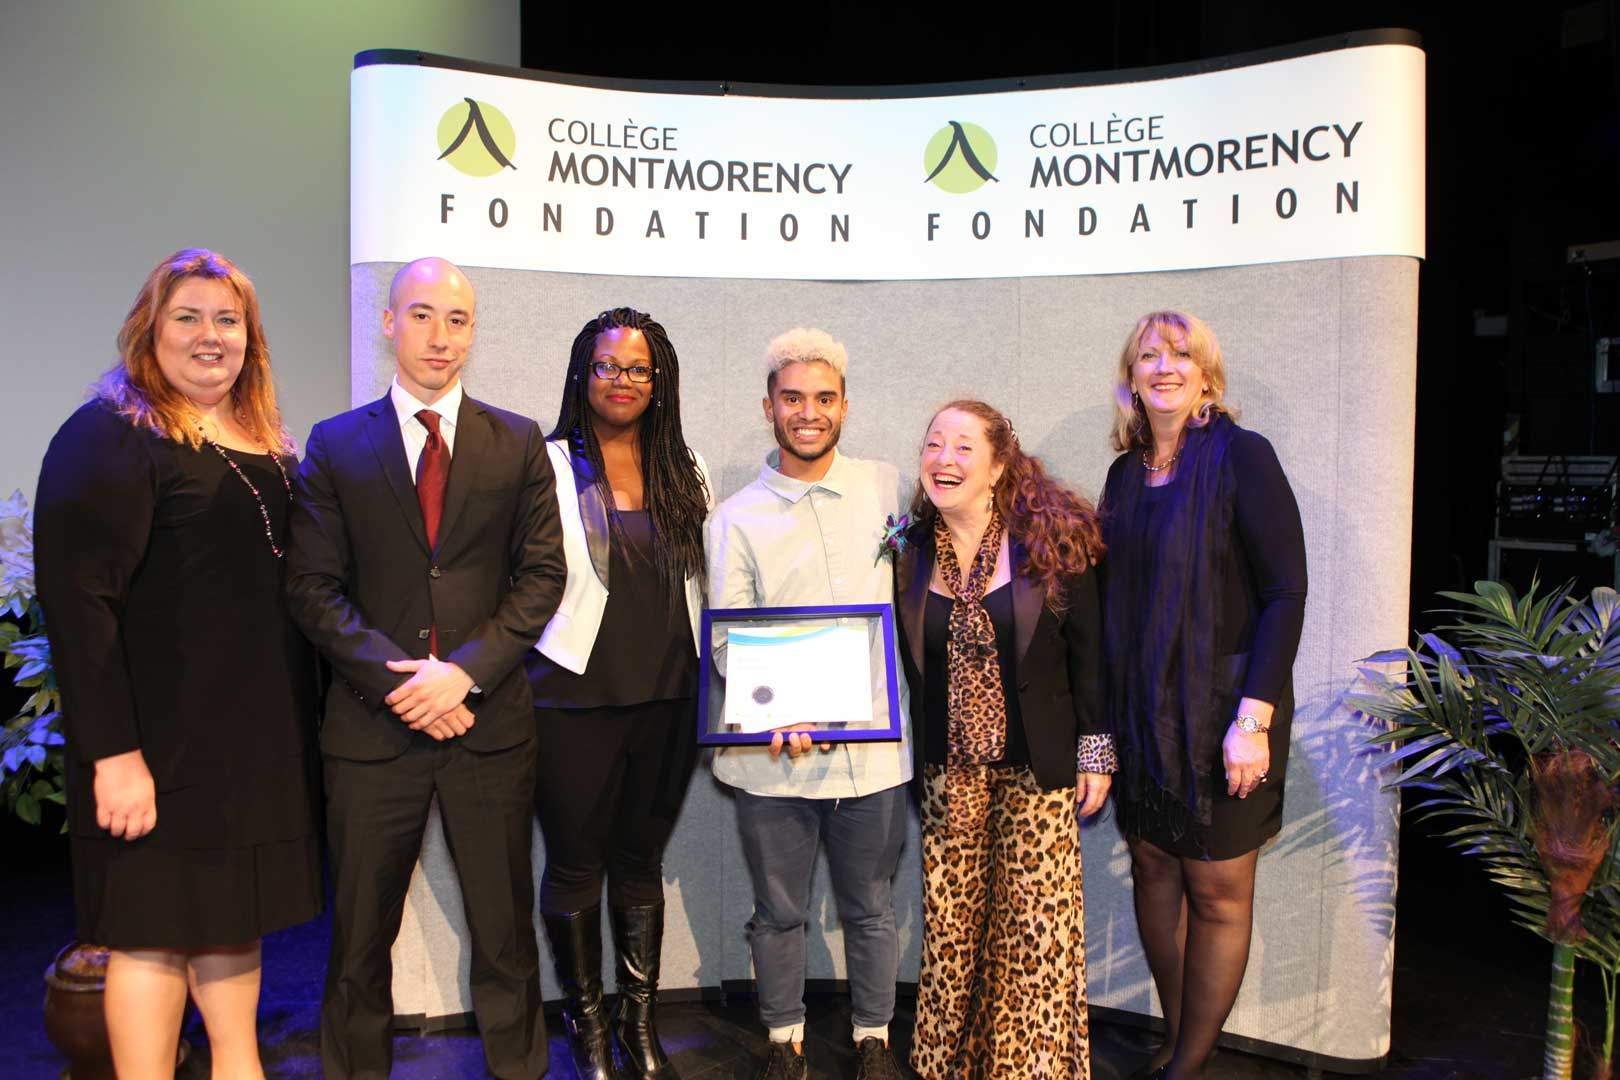 fondation montmorency danse prix don